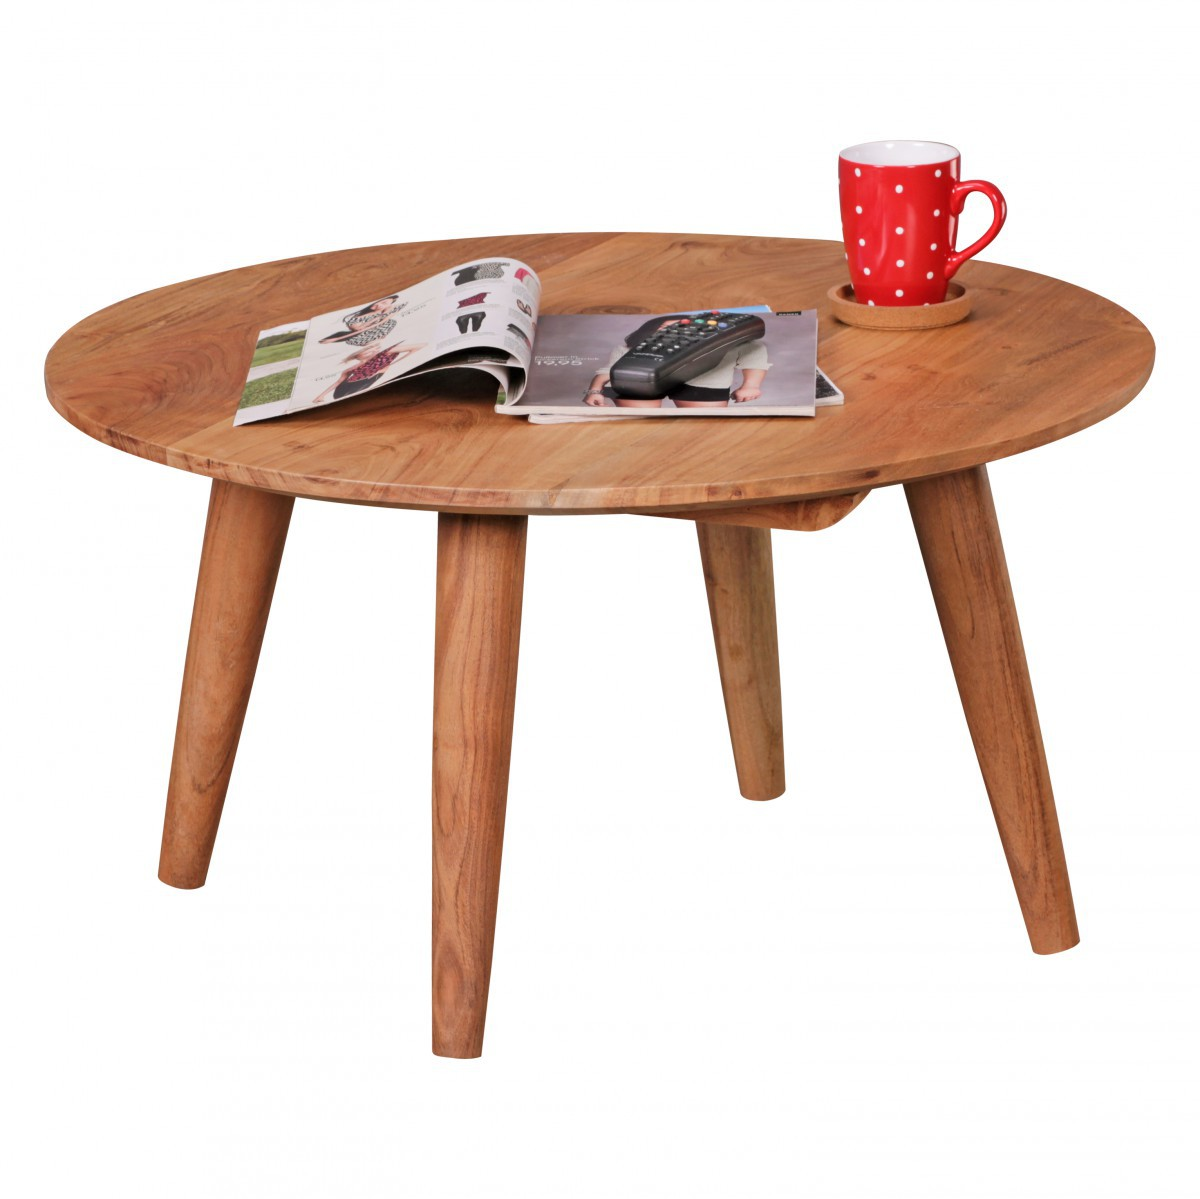 Finebuy table basse en bois massif acacia table basse ronde 75 x 40 cm ferme - Table ronde bois blanc ...